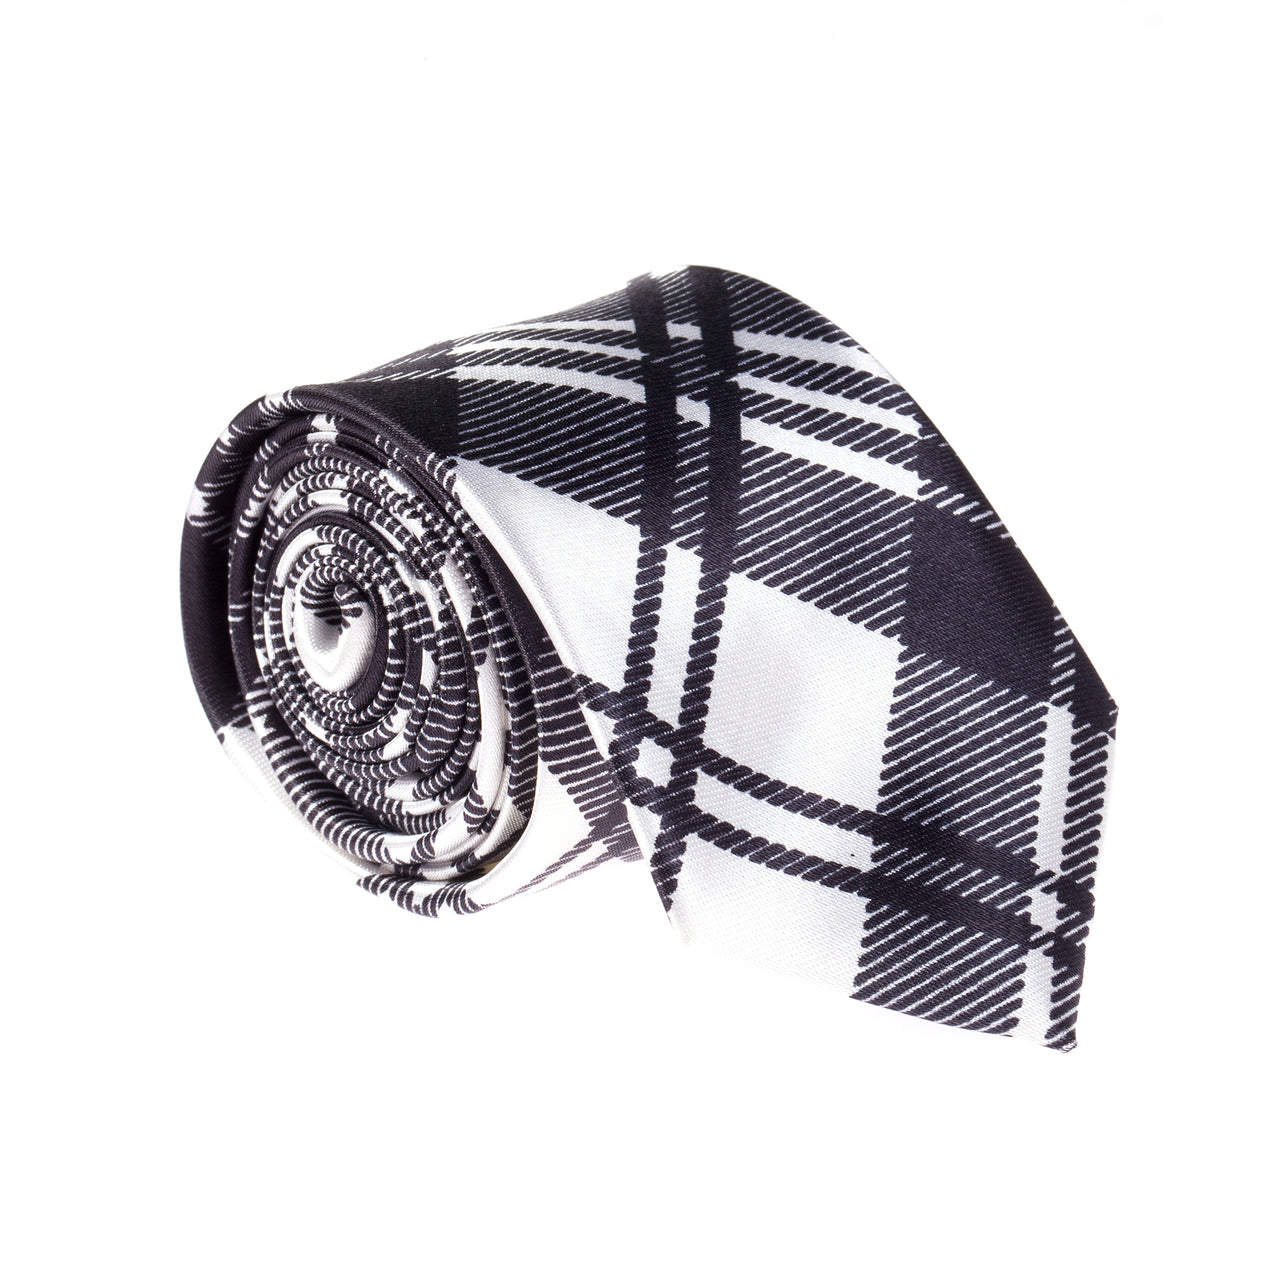 "Slim / Skinny 2"" Satin Tie - Black/White Tartan"